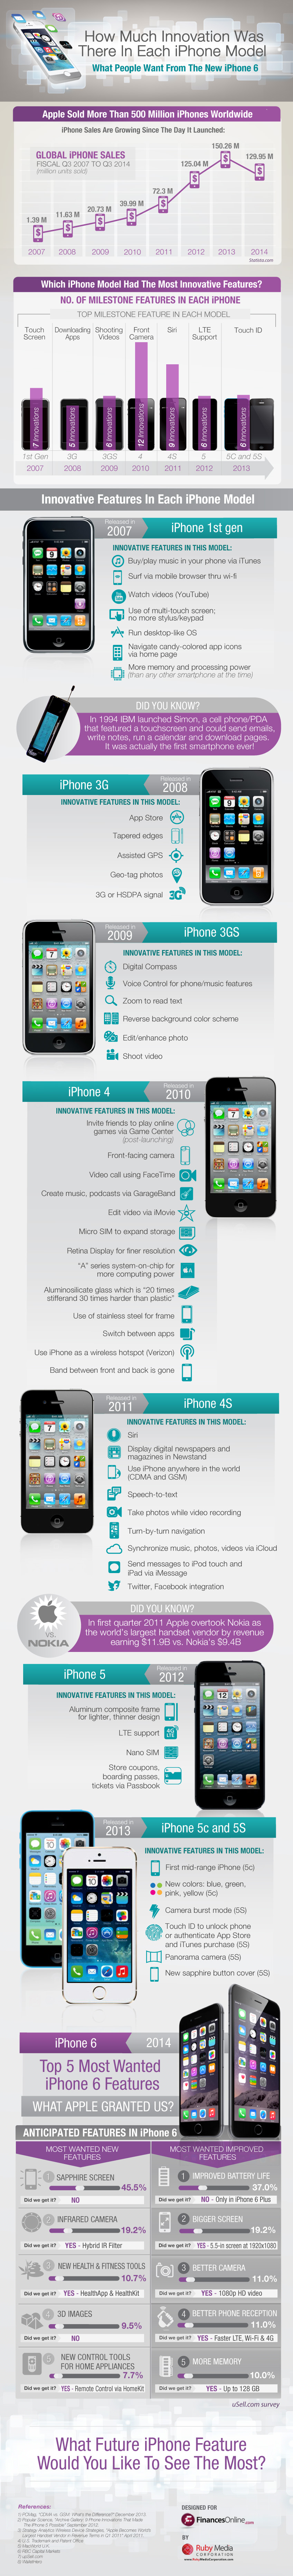 Comparison of Apple iPhone Features